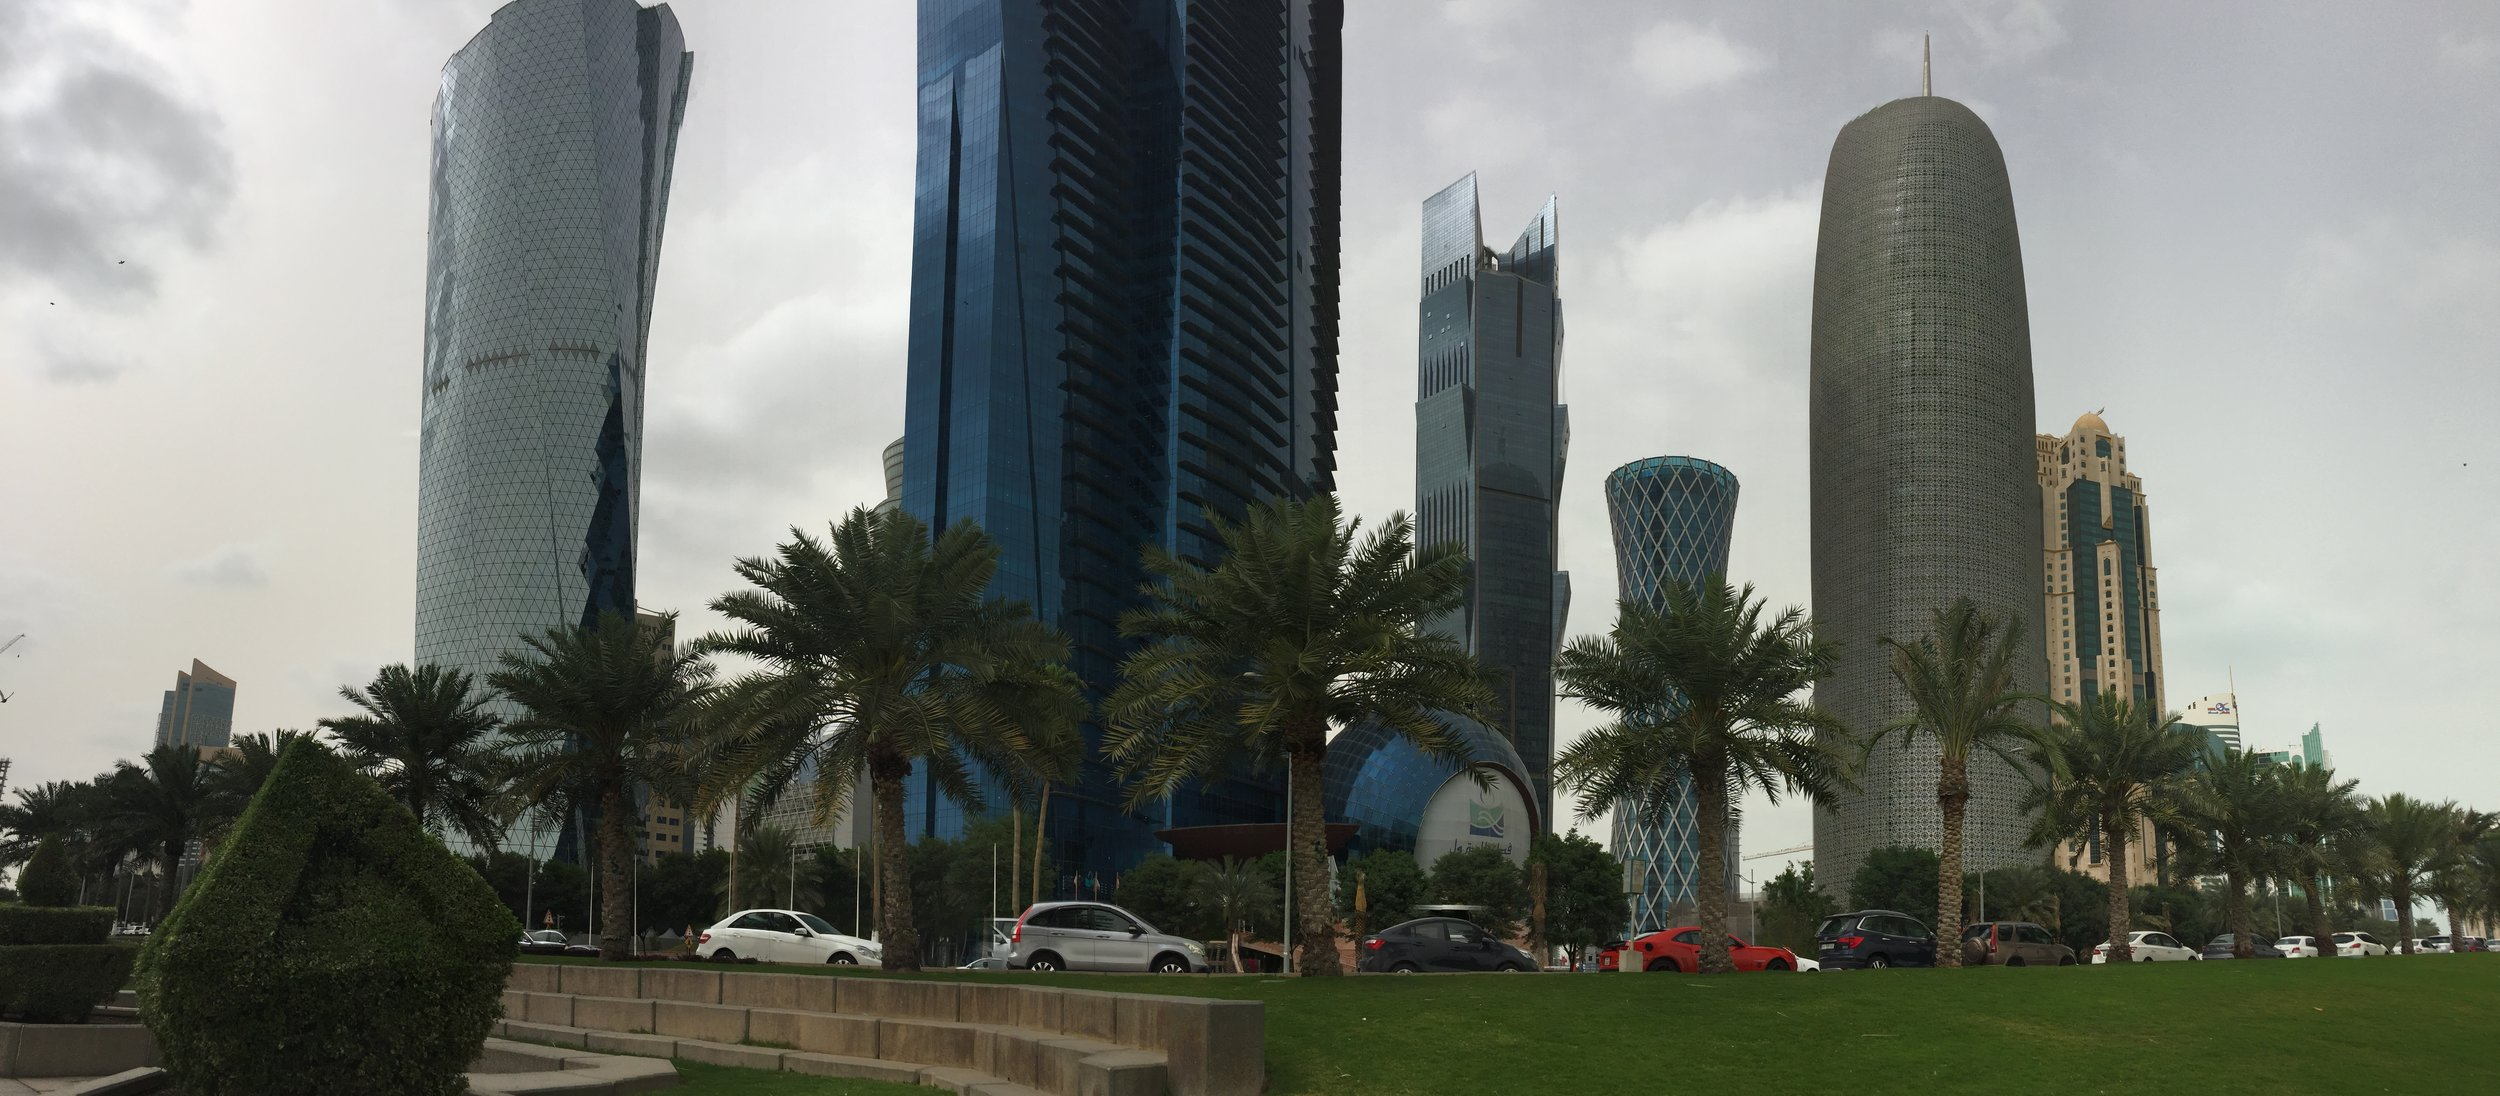 A shot of the downtown skyscrapers from along the Corniche.